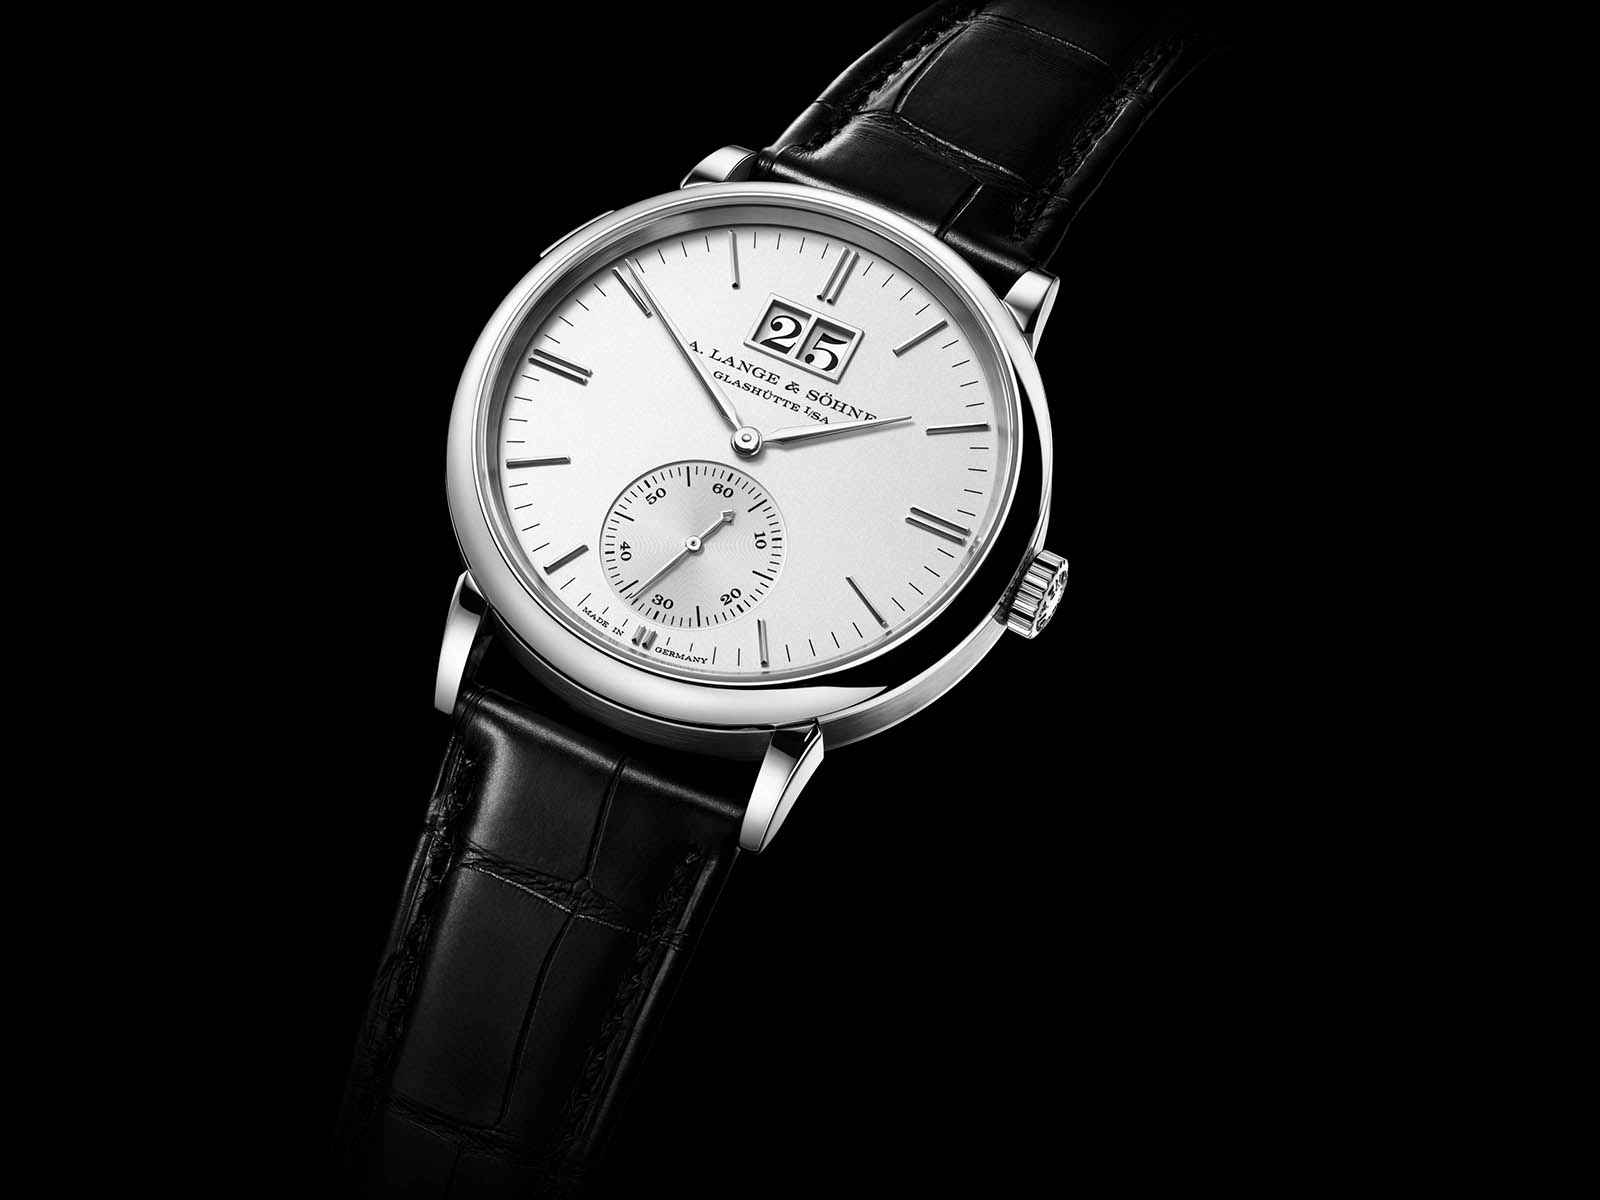 381-026-a-lange-sohne-saxonia-outsize-date-white-gold-4.jpg